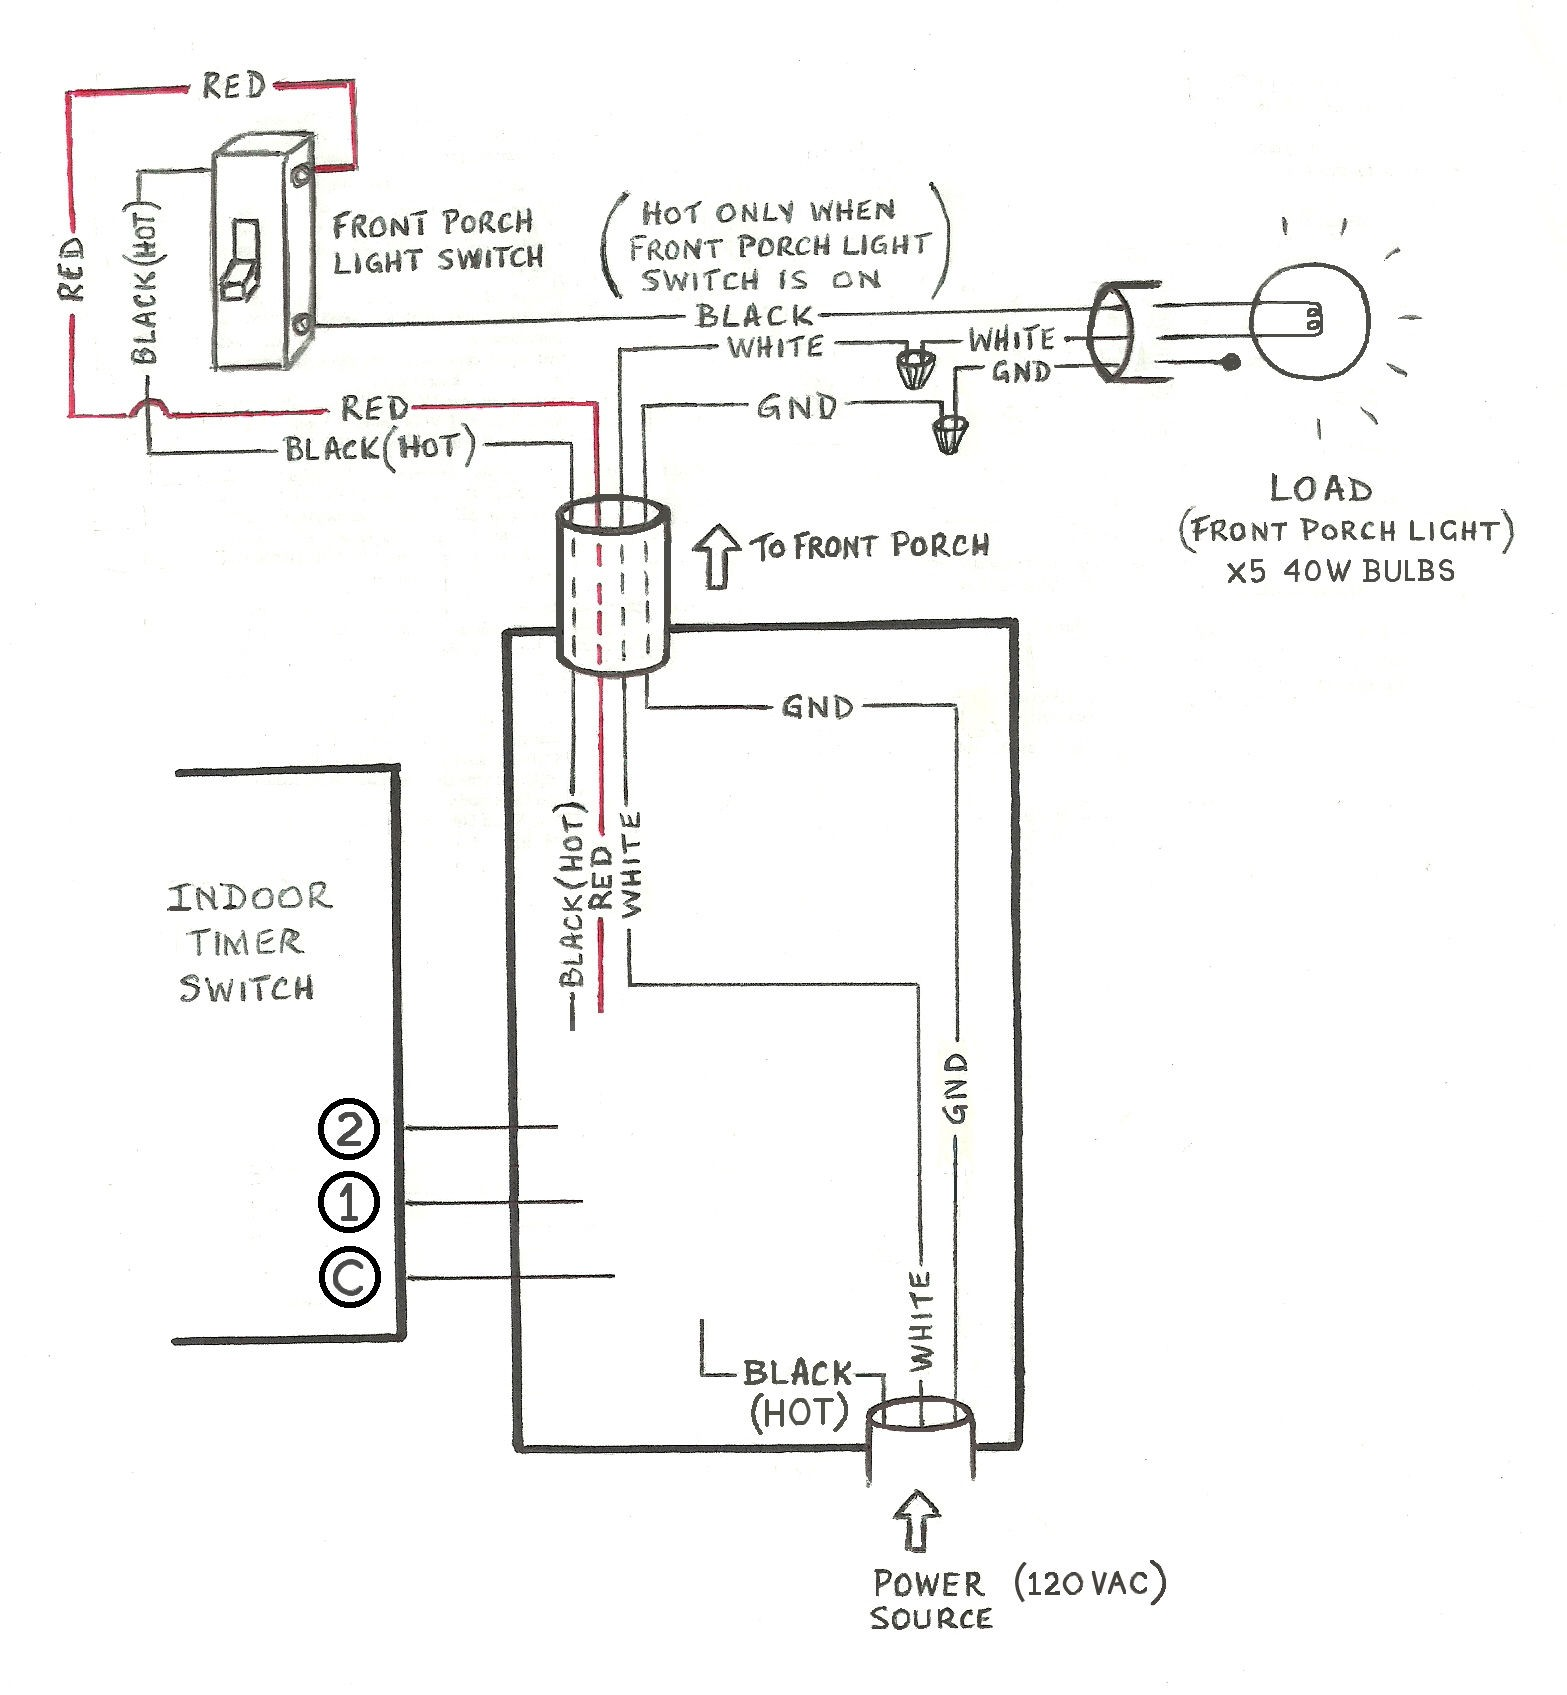 Single pole dimmer switch wiring diagram elegant wiring diagram image wiring diagram for dimmer switch single pole wellread me 17 asfbconference2016 Image collections